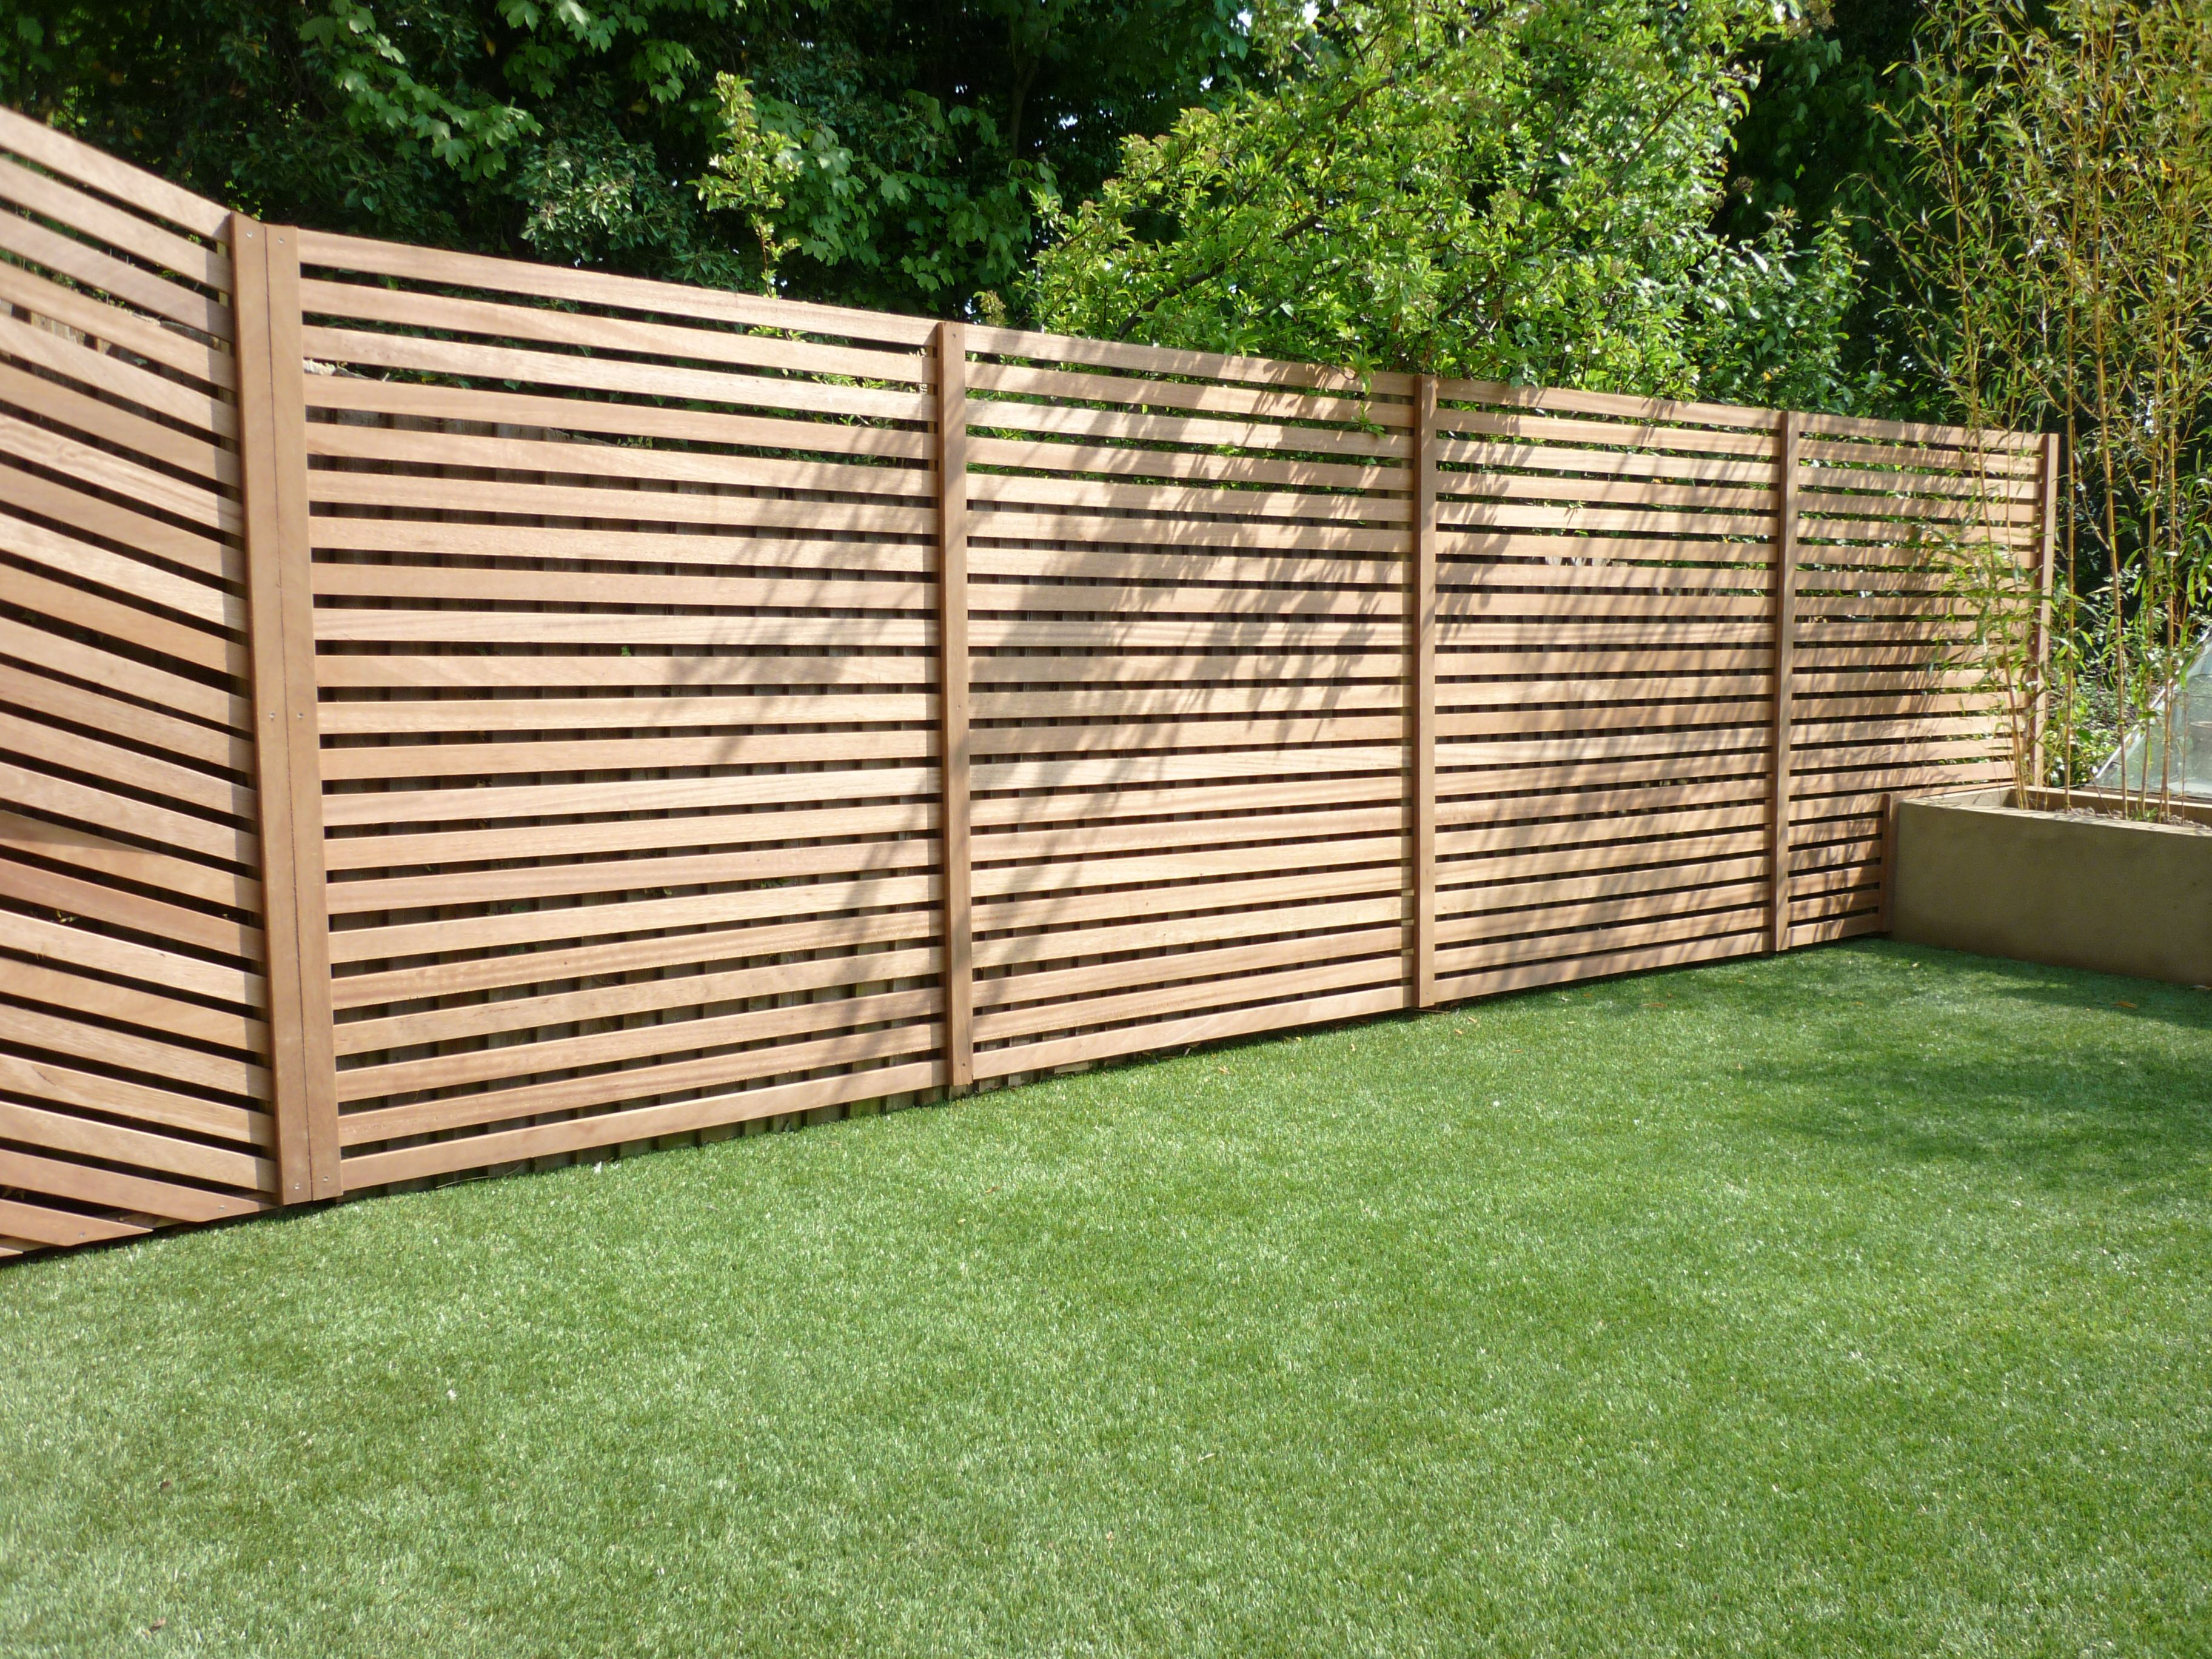 Iroko Slatted Fence Outdoor Shower Enclosure Contemporary Fence